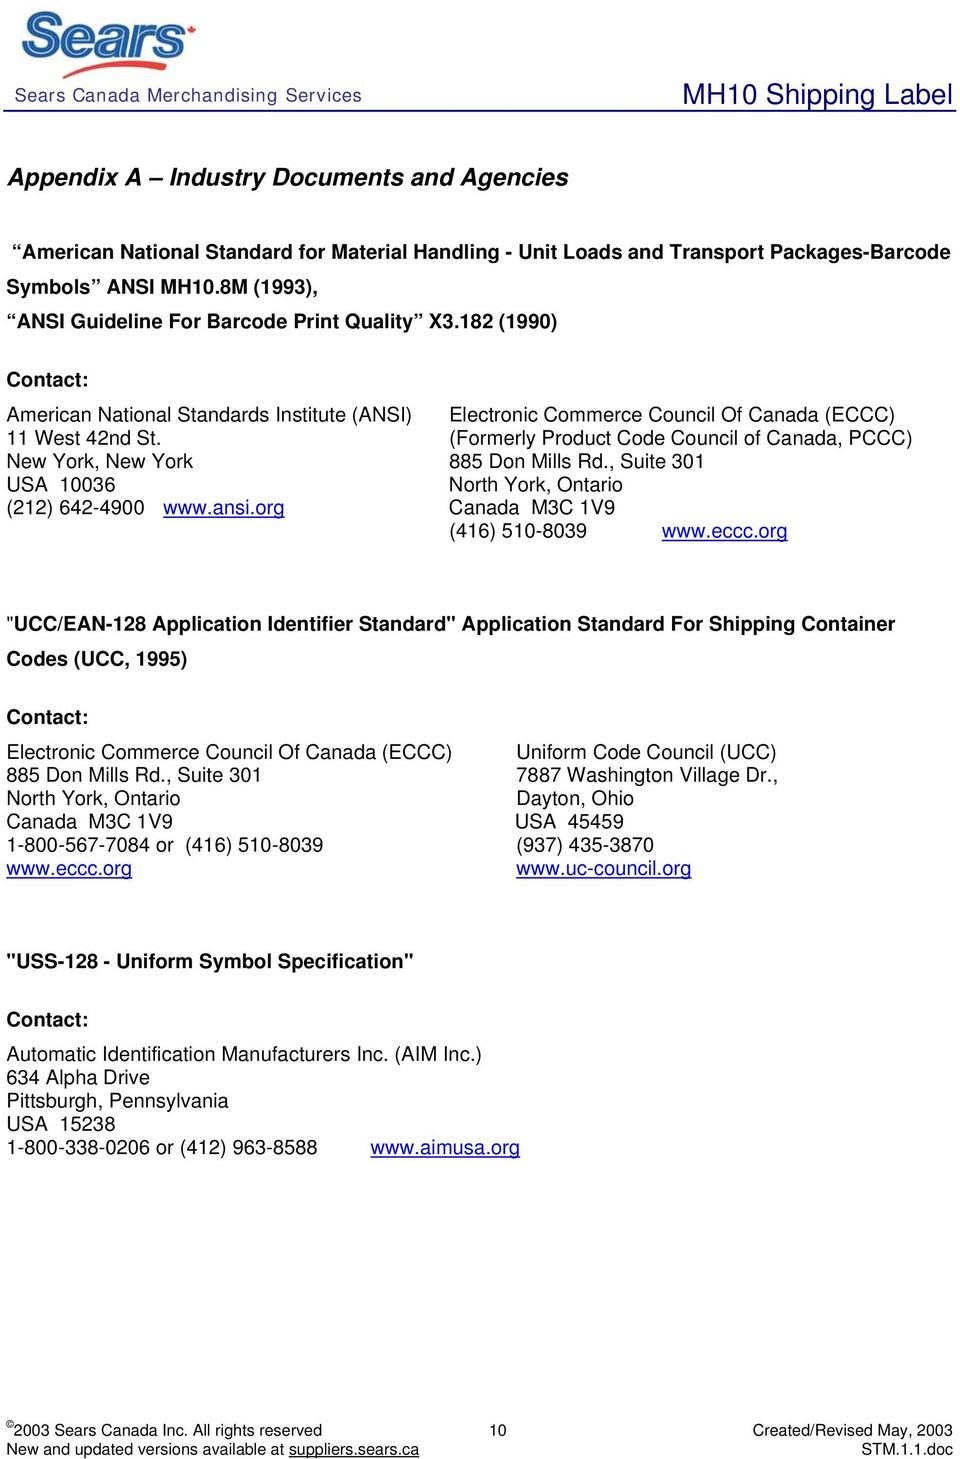 (Formerly Product Code Council of Canada, PCCC) New York, New York 885 Don Mills Rd., Suite 301 USA 10036 North York, Ontario (212) 642-4900 www.ansi.org Canada M3C 1V9 (416) 510-8039 www.eccc.